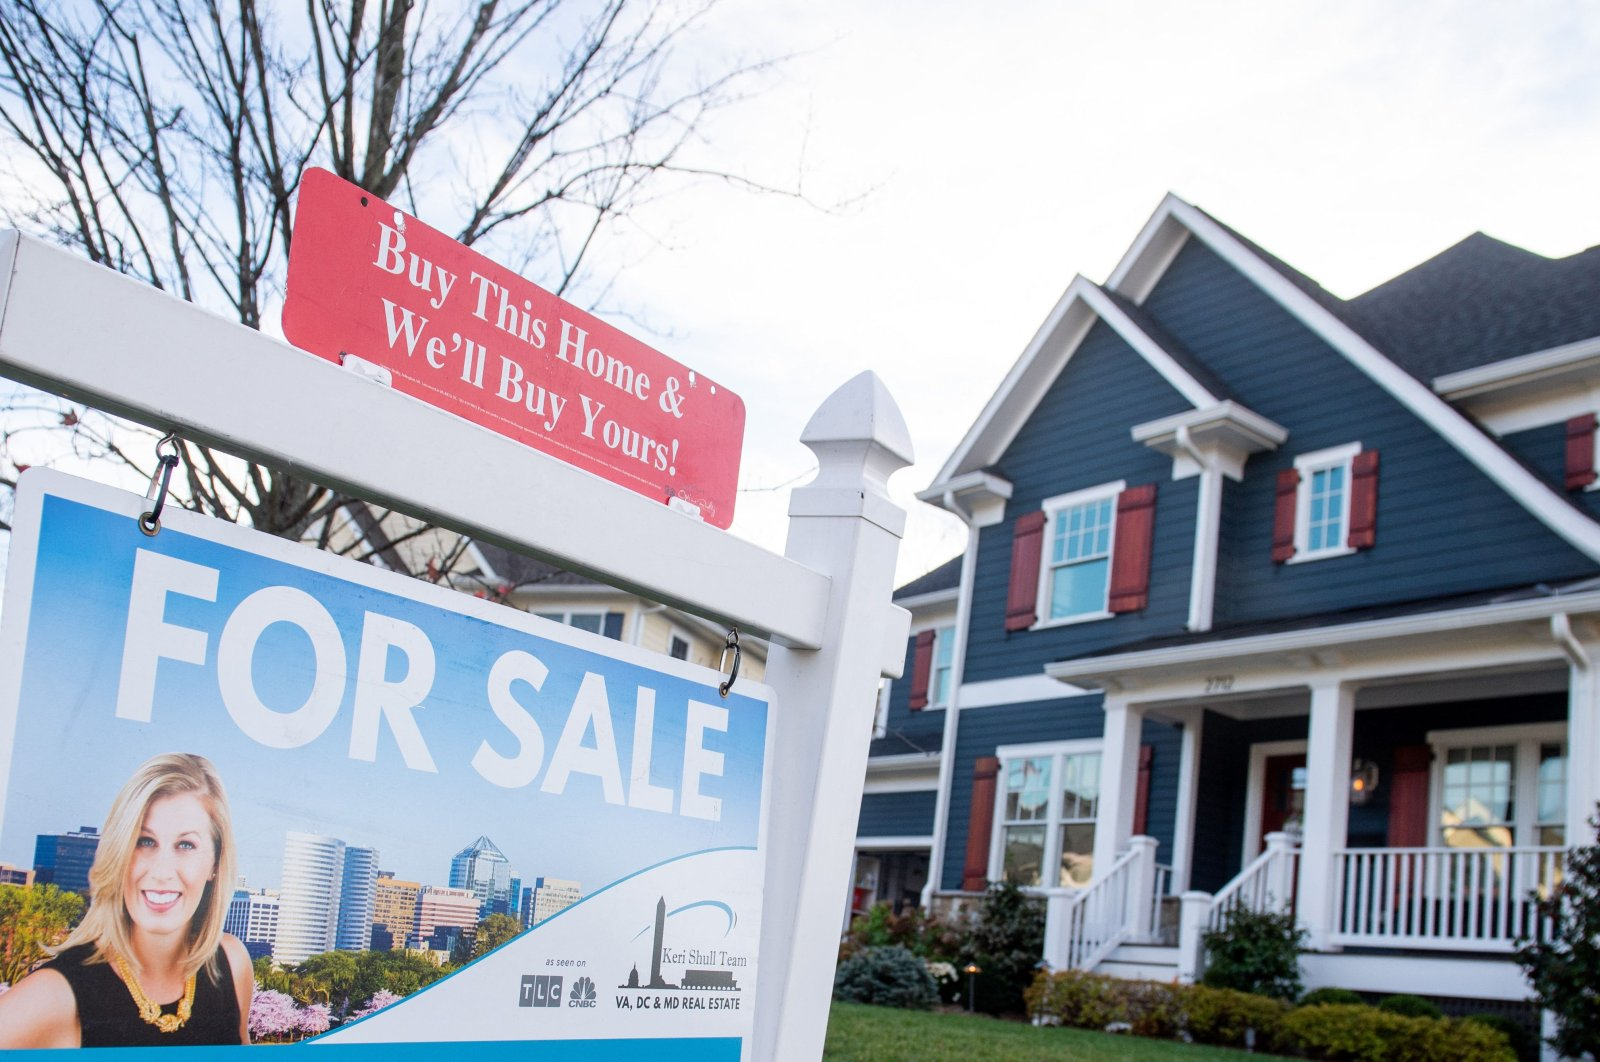 A house for sale in Arlington, Virginia, United States, Nov. 21, 2020. (AFP Photo)